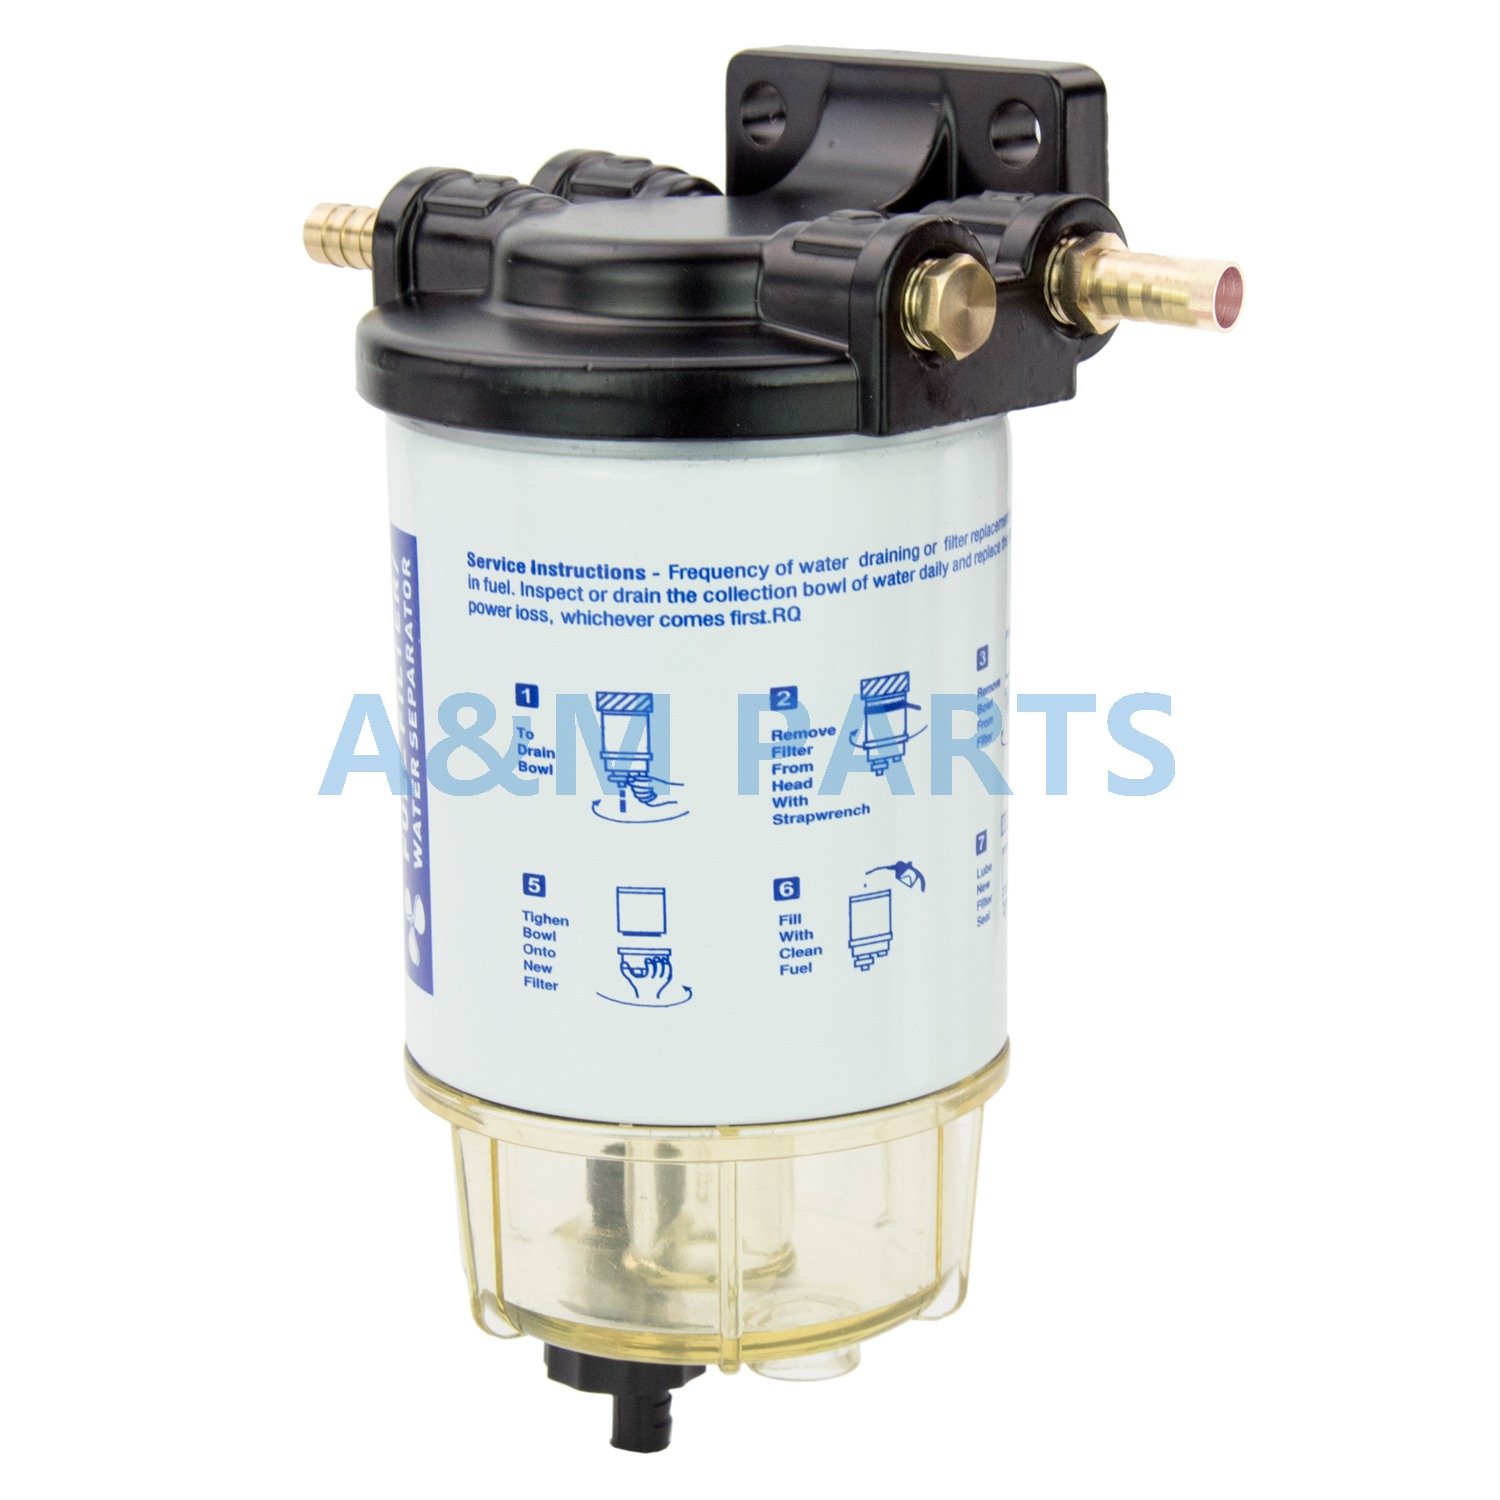 Boat Fuel Filter Marine Engine Fuel Water Separator for Mercury Yamaha  Outboard 10 Micron-in Fuel Filters from Automobiles & Motorcycles on  Aliexpress.com ...